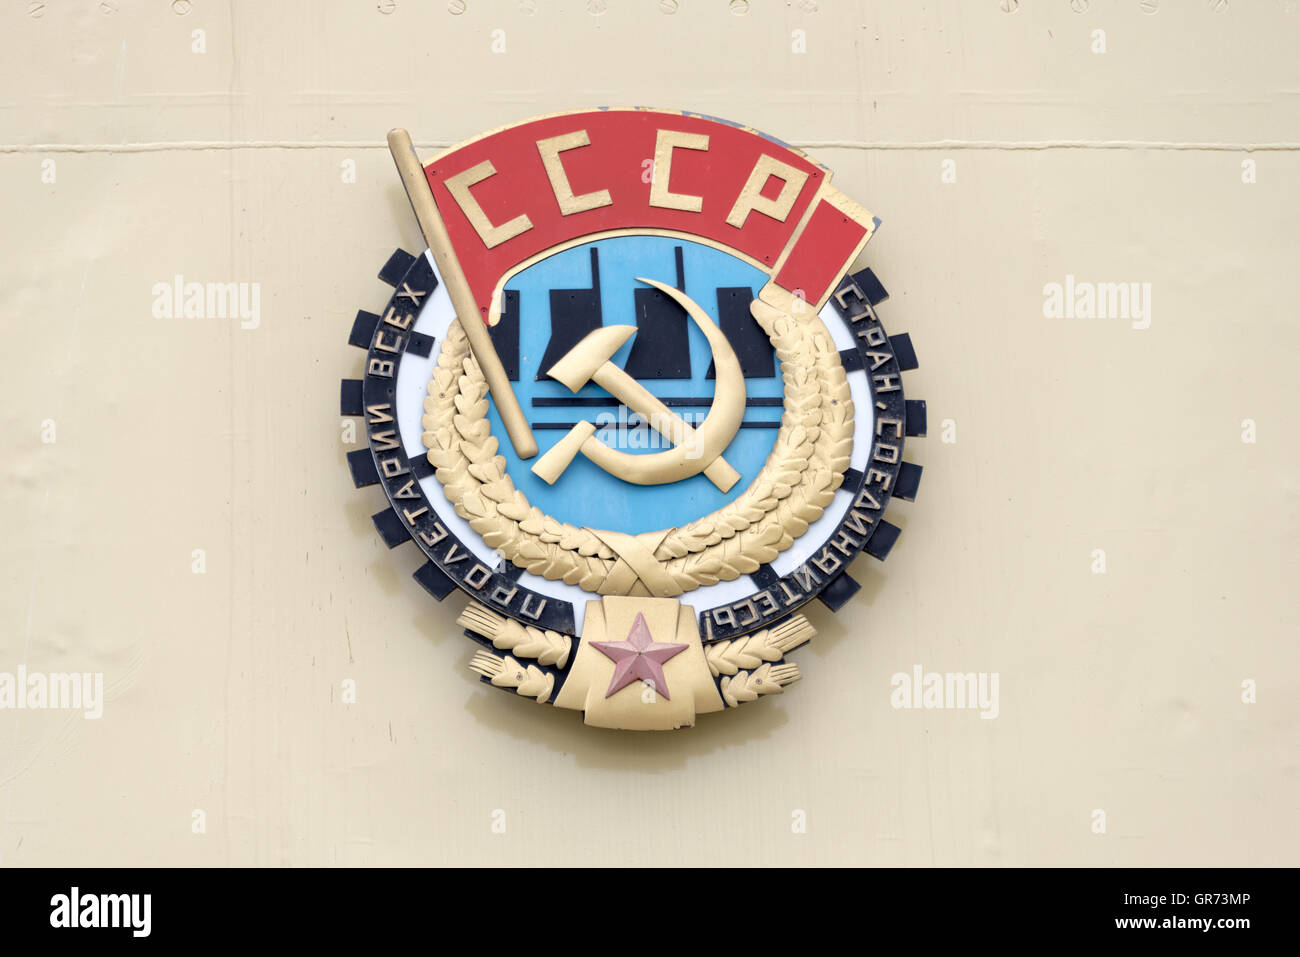 Soviet CCCP emblem with hammer and sickle on a wall - Stock Image